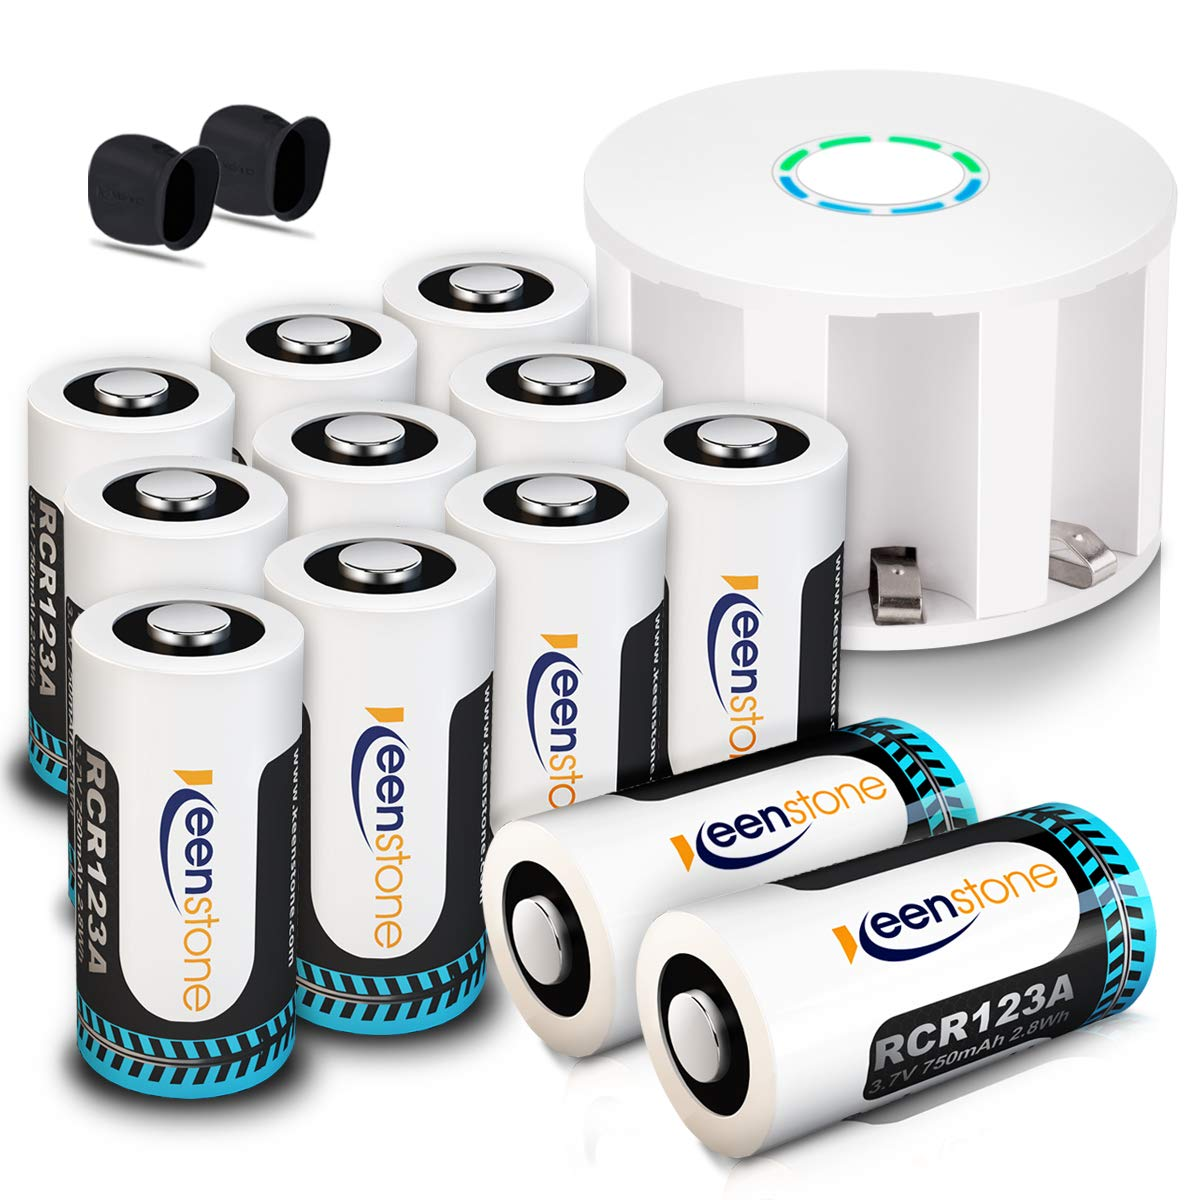 Keenstone RCR123A Rechargeable Batteries and Charger, 12Pcs 3.7v Li-ion 750mAh Rechargeable Camera Batteries for Arlo VMS3030/3230/3330/3430 Cameras